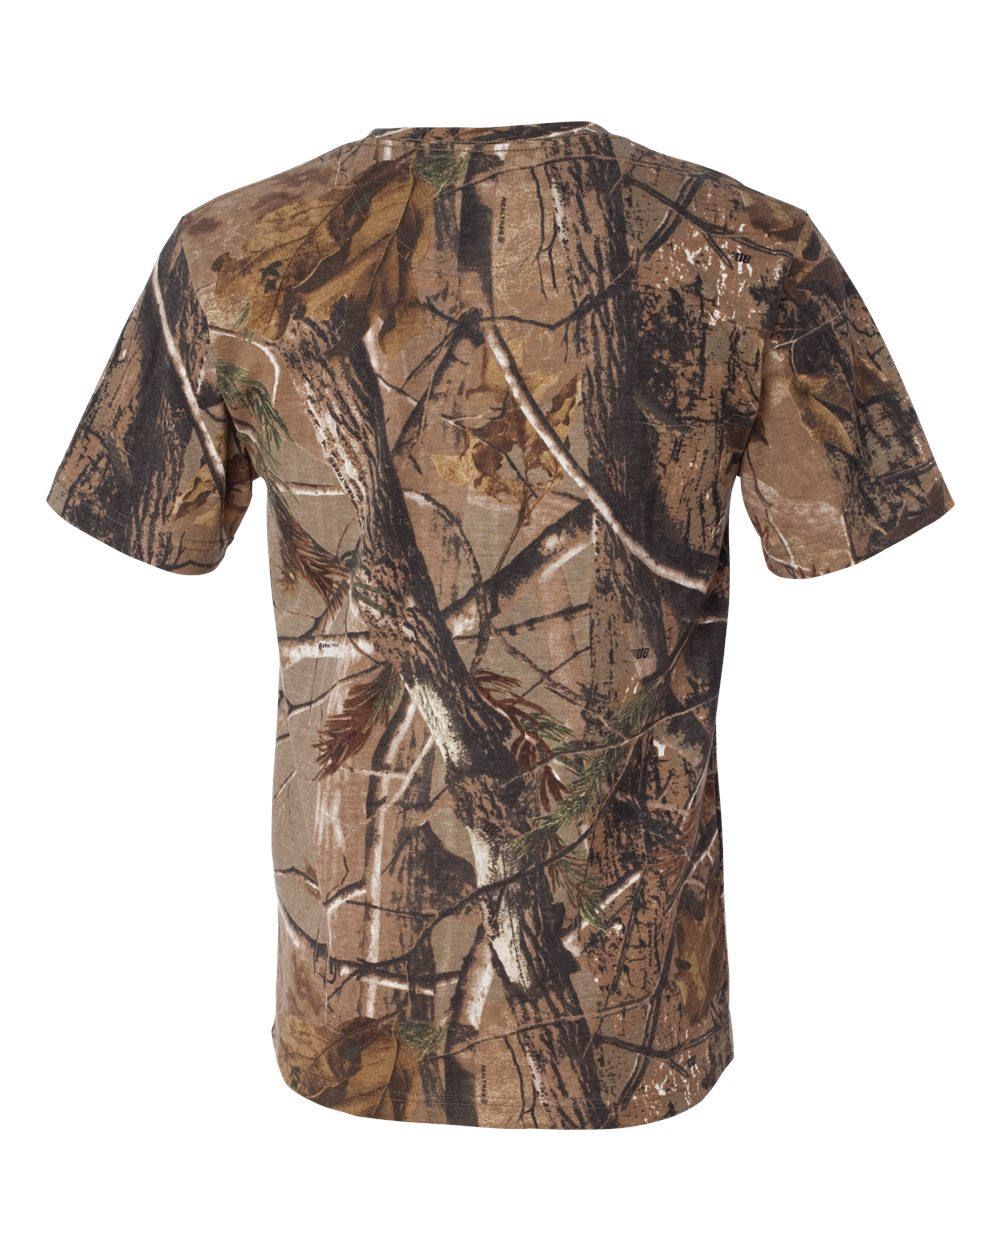 Code-Five-Mens-Adult-Realtree-Camo-Tee-T-Shirt-Short-Sleeve-3980-up-to-4XL thumbnail 7